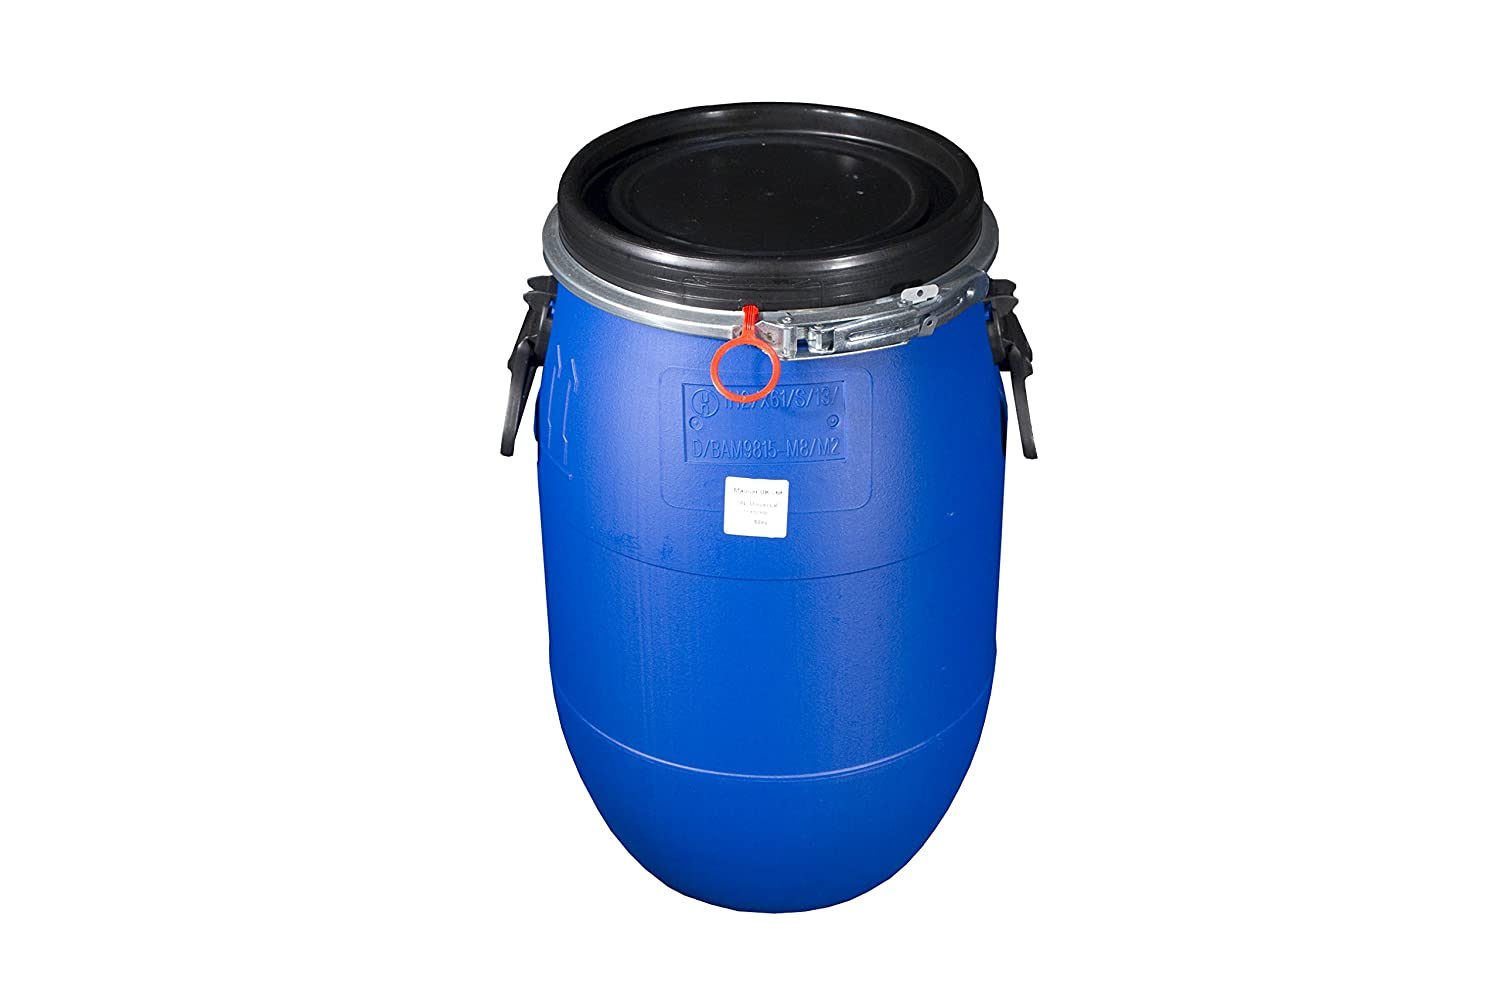 30 Litre UN Approved, Foodgrade Storage Container, Drum, Keg, Airtight, Free Delivery Mauser